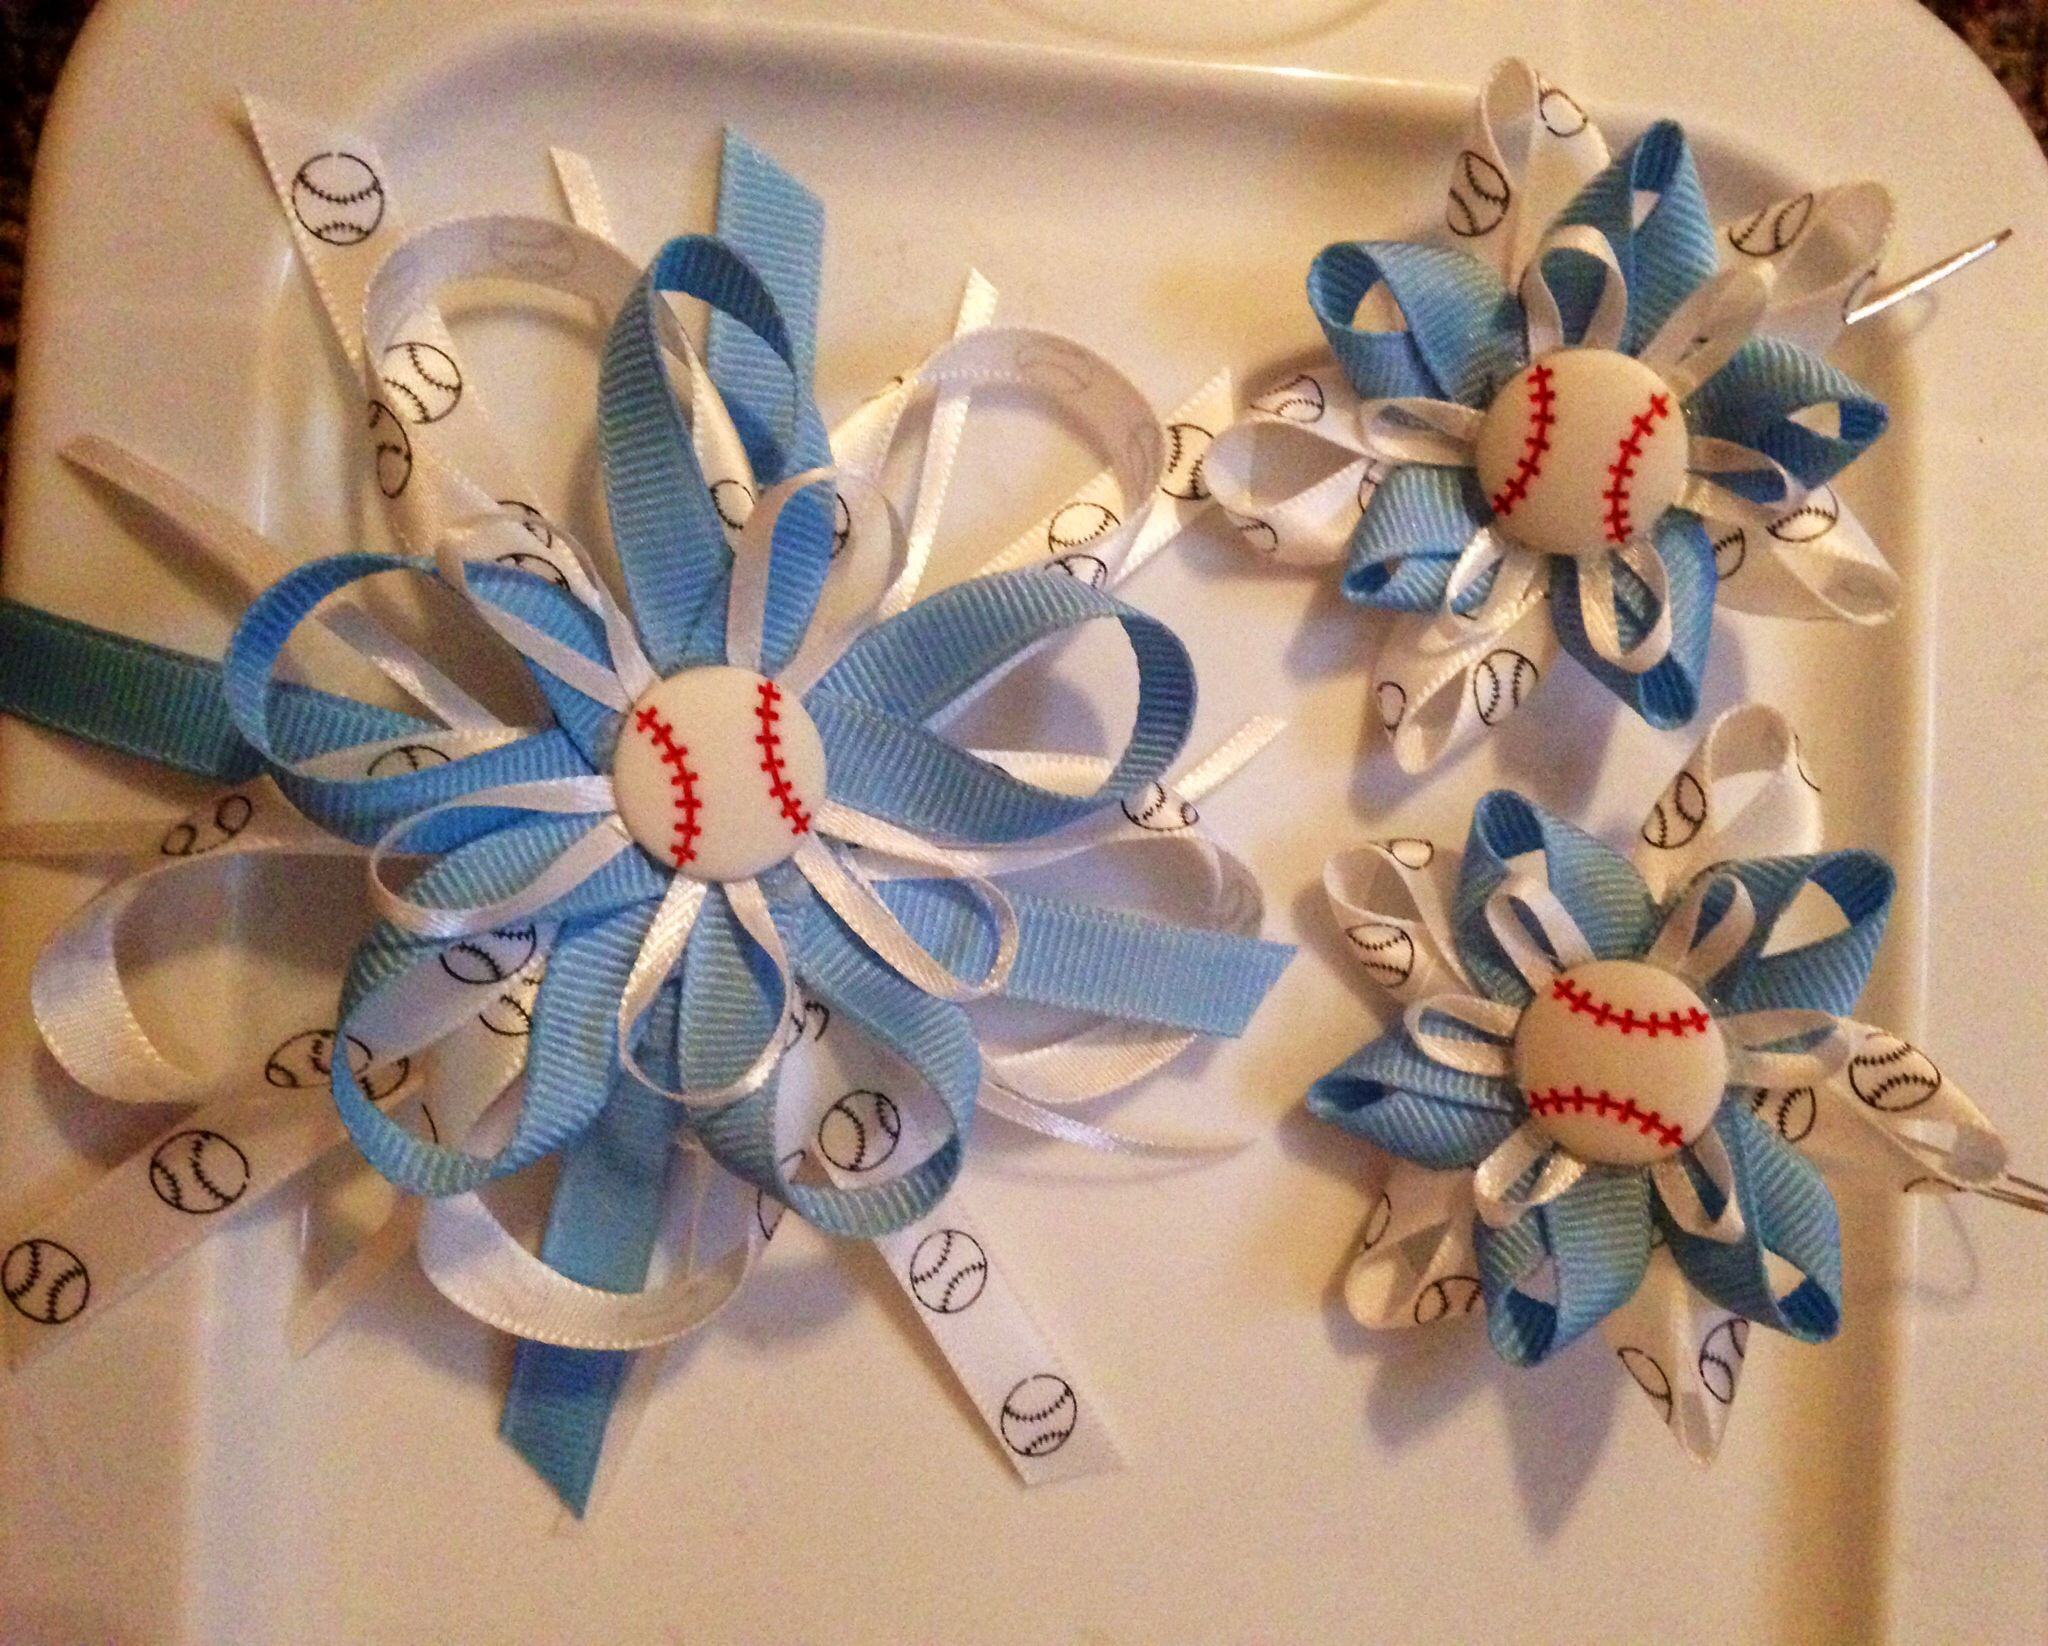 Baseball earrings and hair bow for mommy to wear to show her support!!!! So proud!